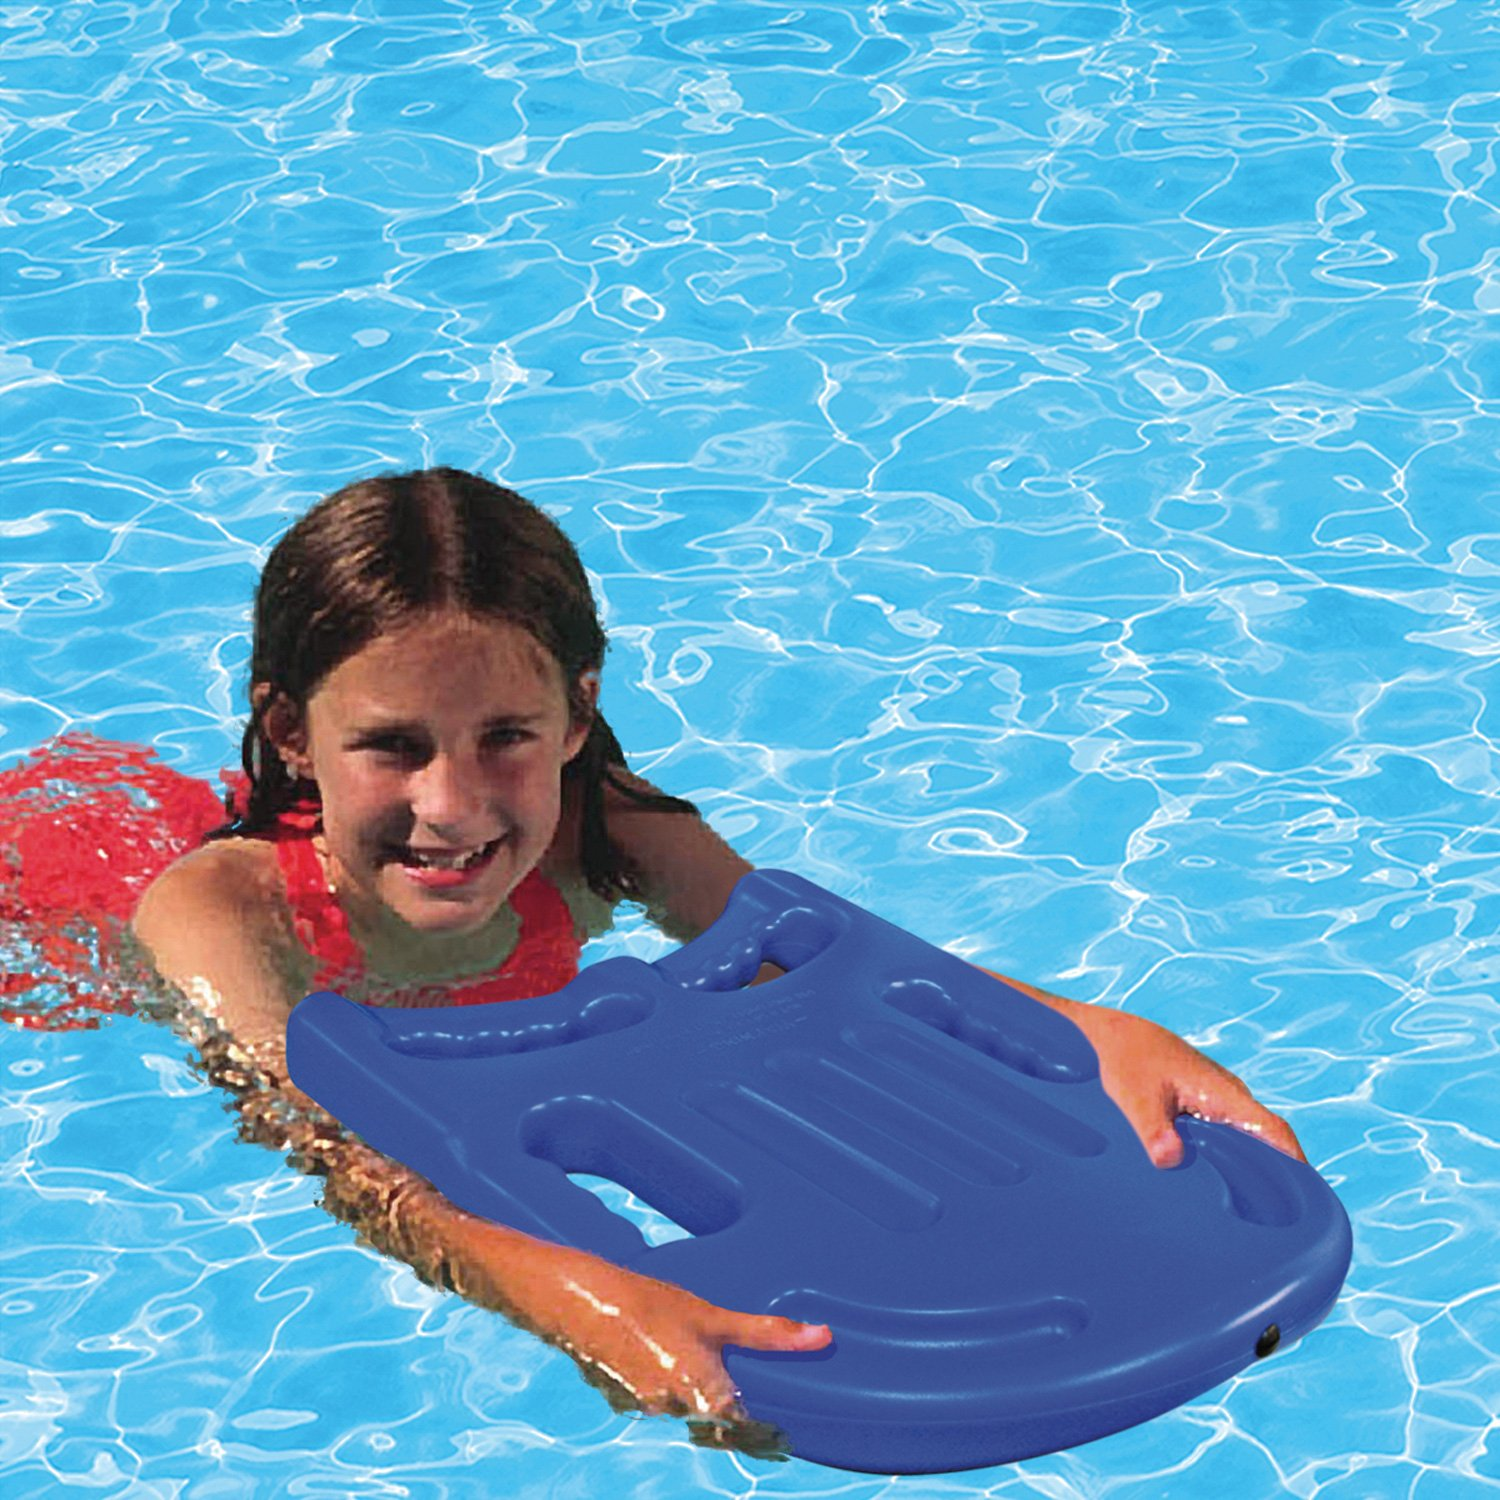 Poolmaster 50513 Advanced Kickboard Swim Trainer by Poolmaster (Image #2)